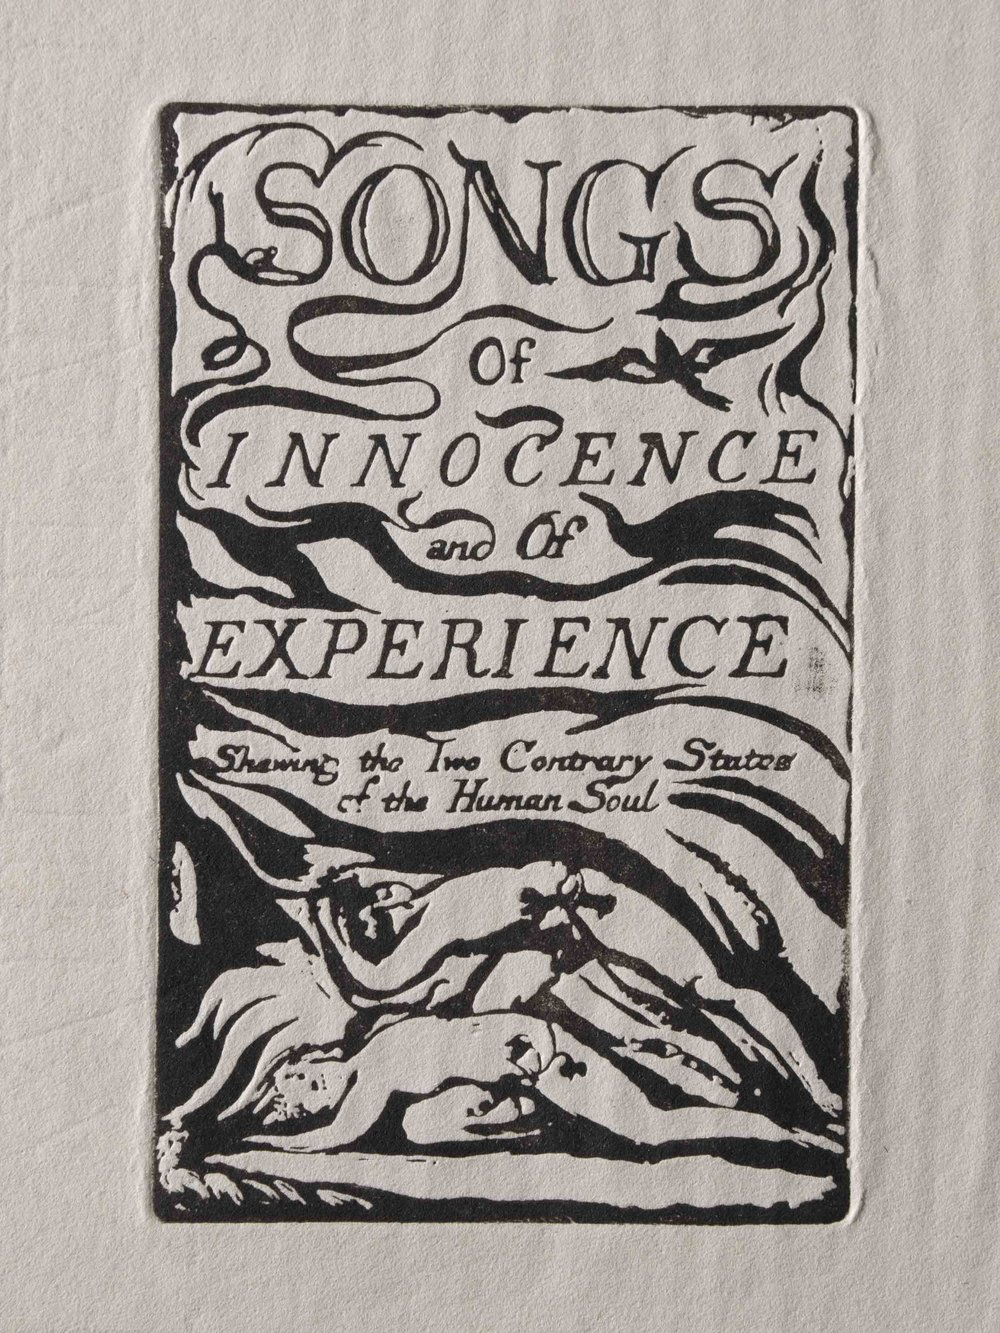 William-Blake-prints-General-title-page,-Songs-of-Innocence-and-of-Experience.jpg